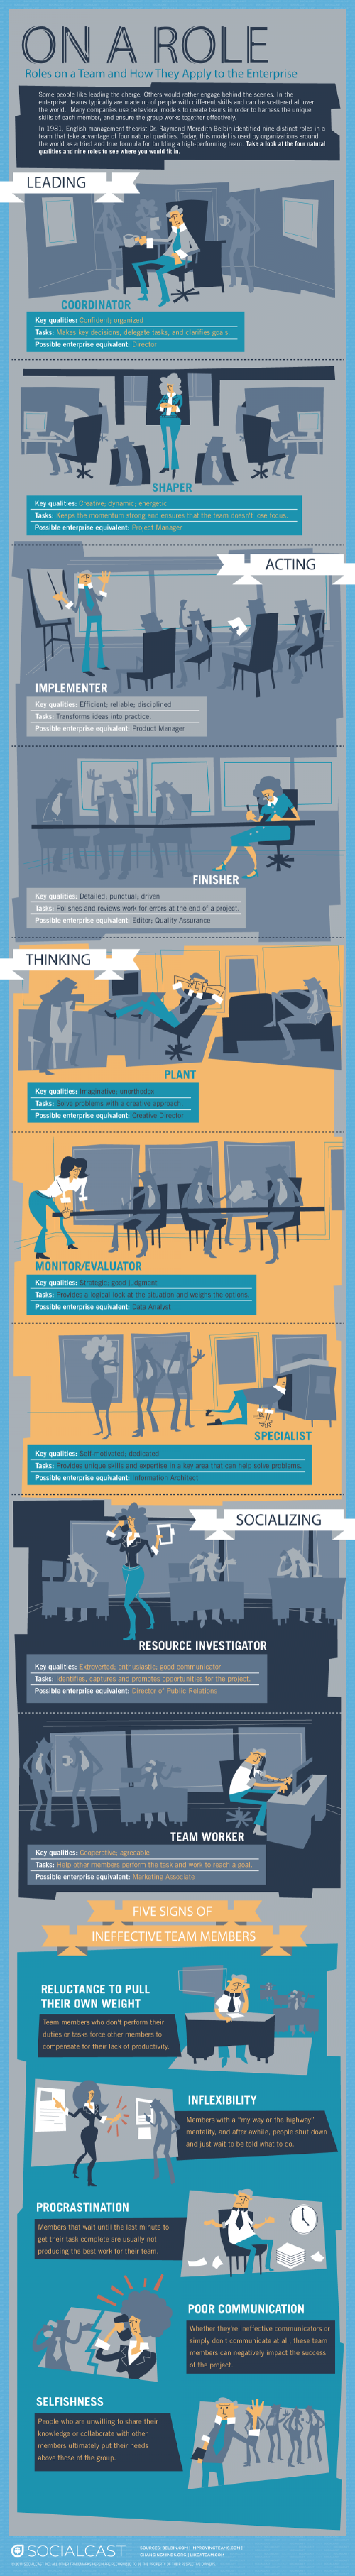 On a Role Infographic